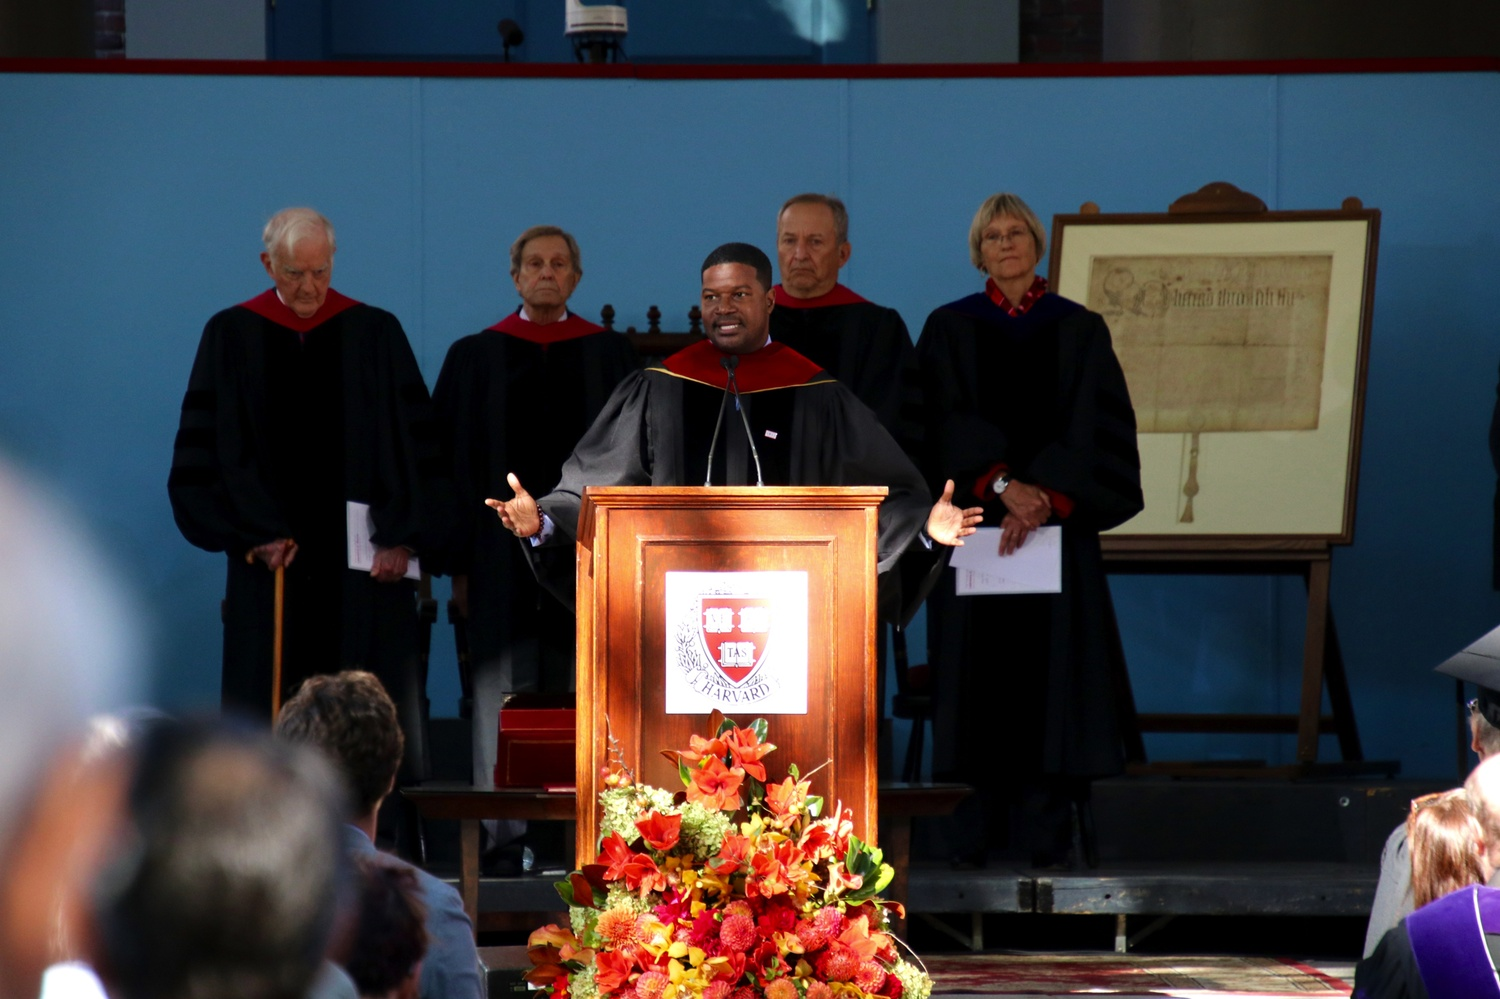 Jonathan Walton speaks at the inauguration of University President Lawrence S. Bacow in October 2018.